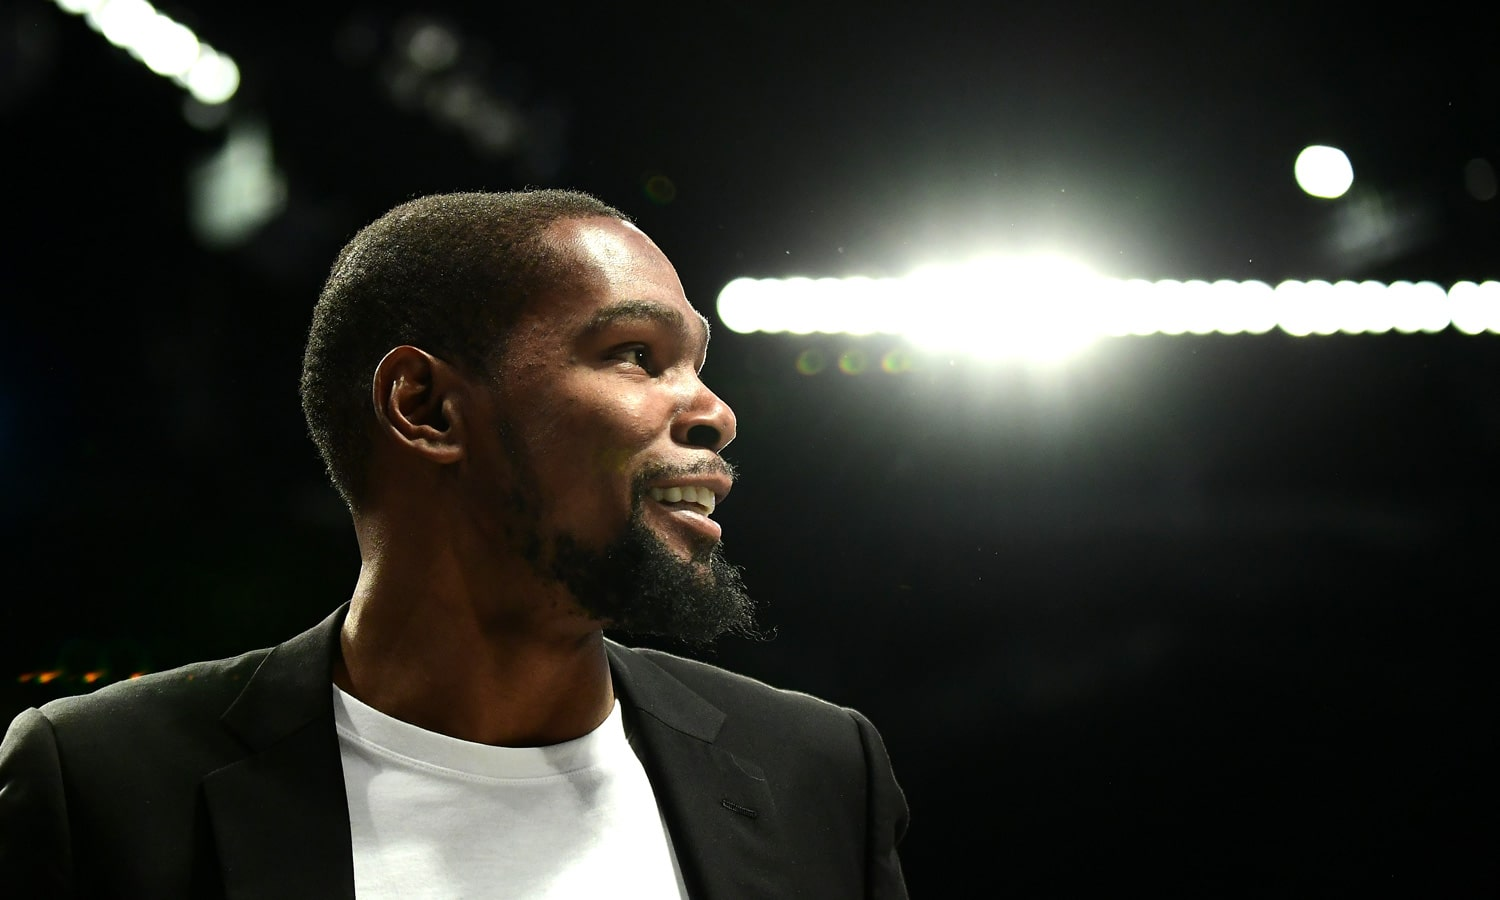 Kevin Durant Becomes Marijuana Advocate For NBA Players